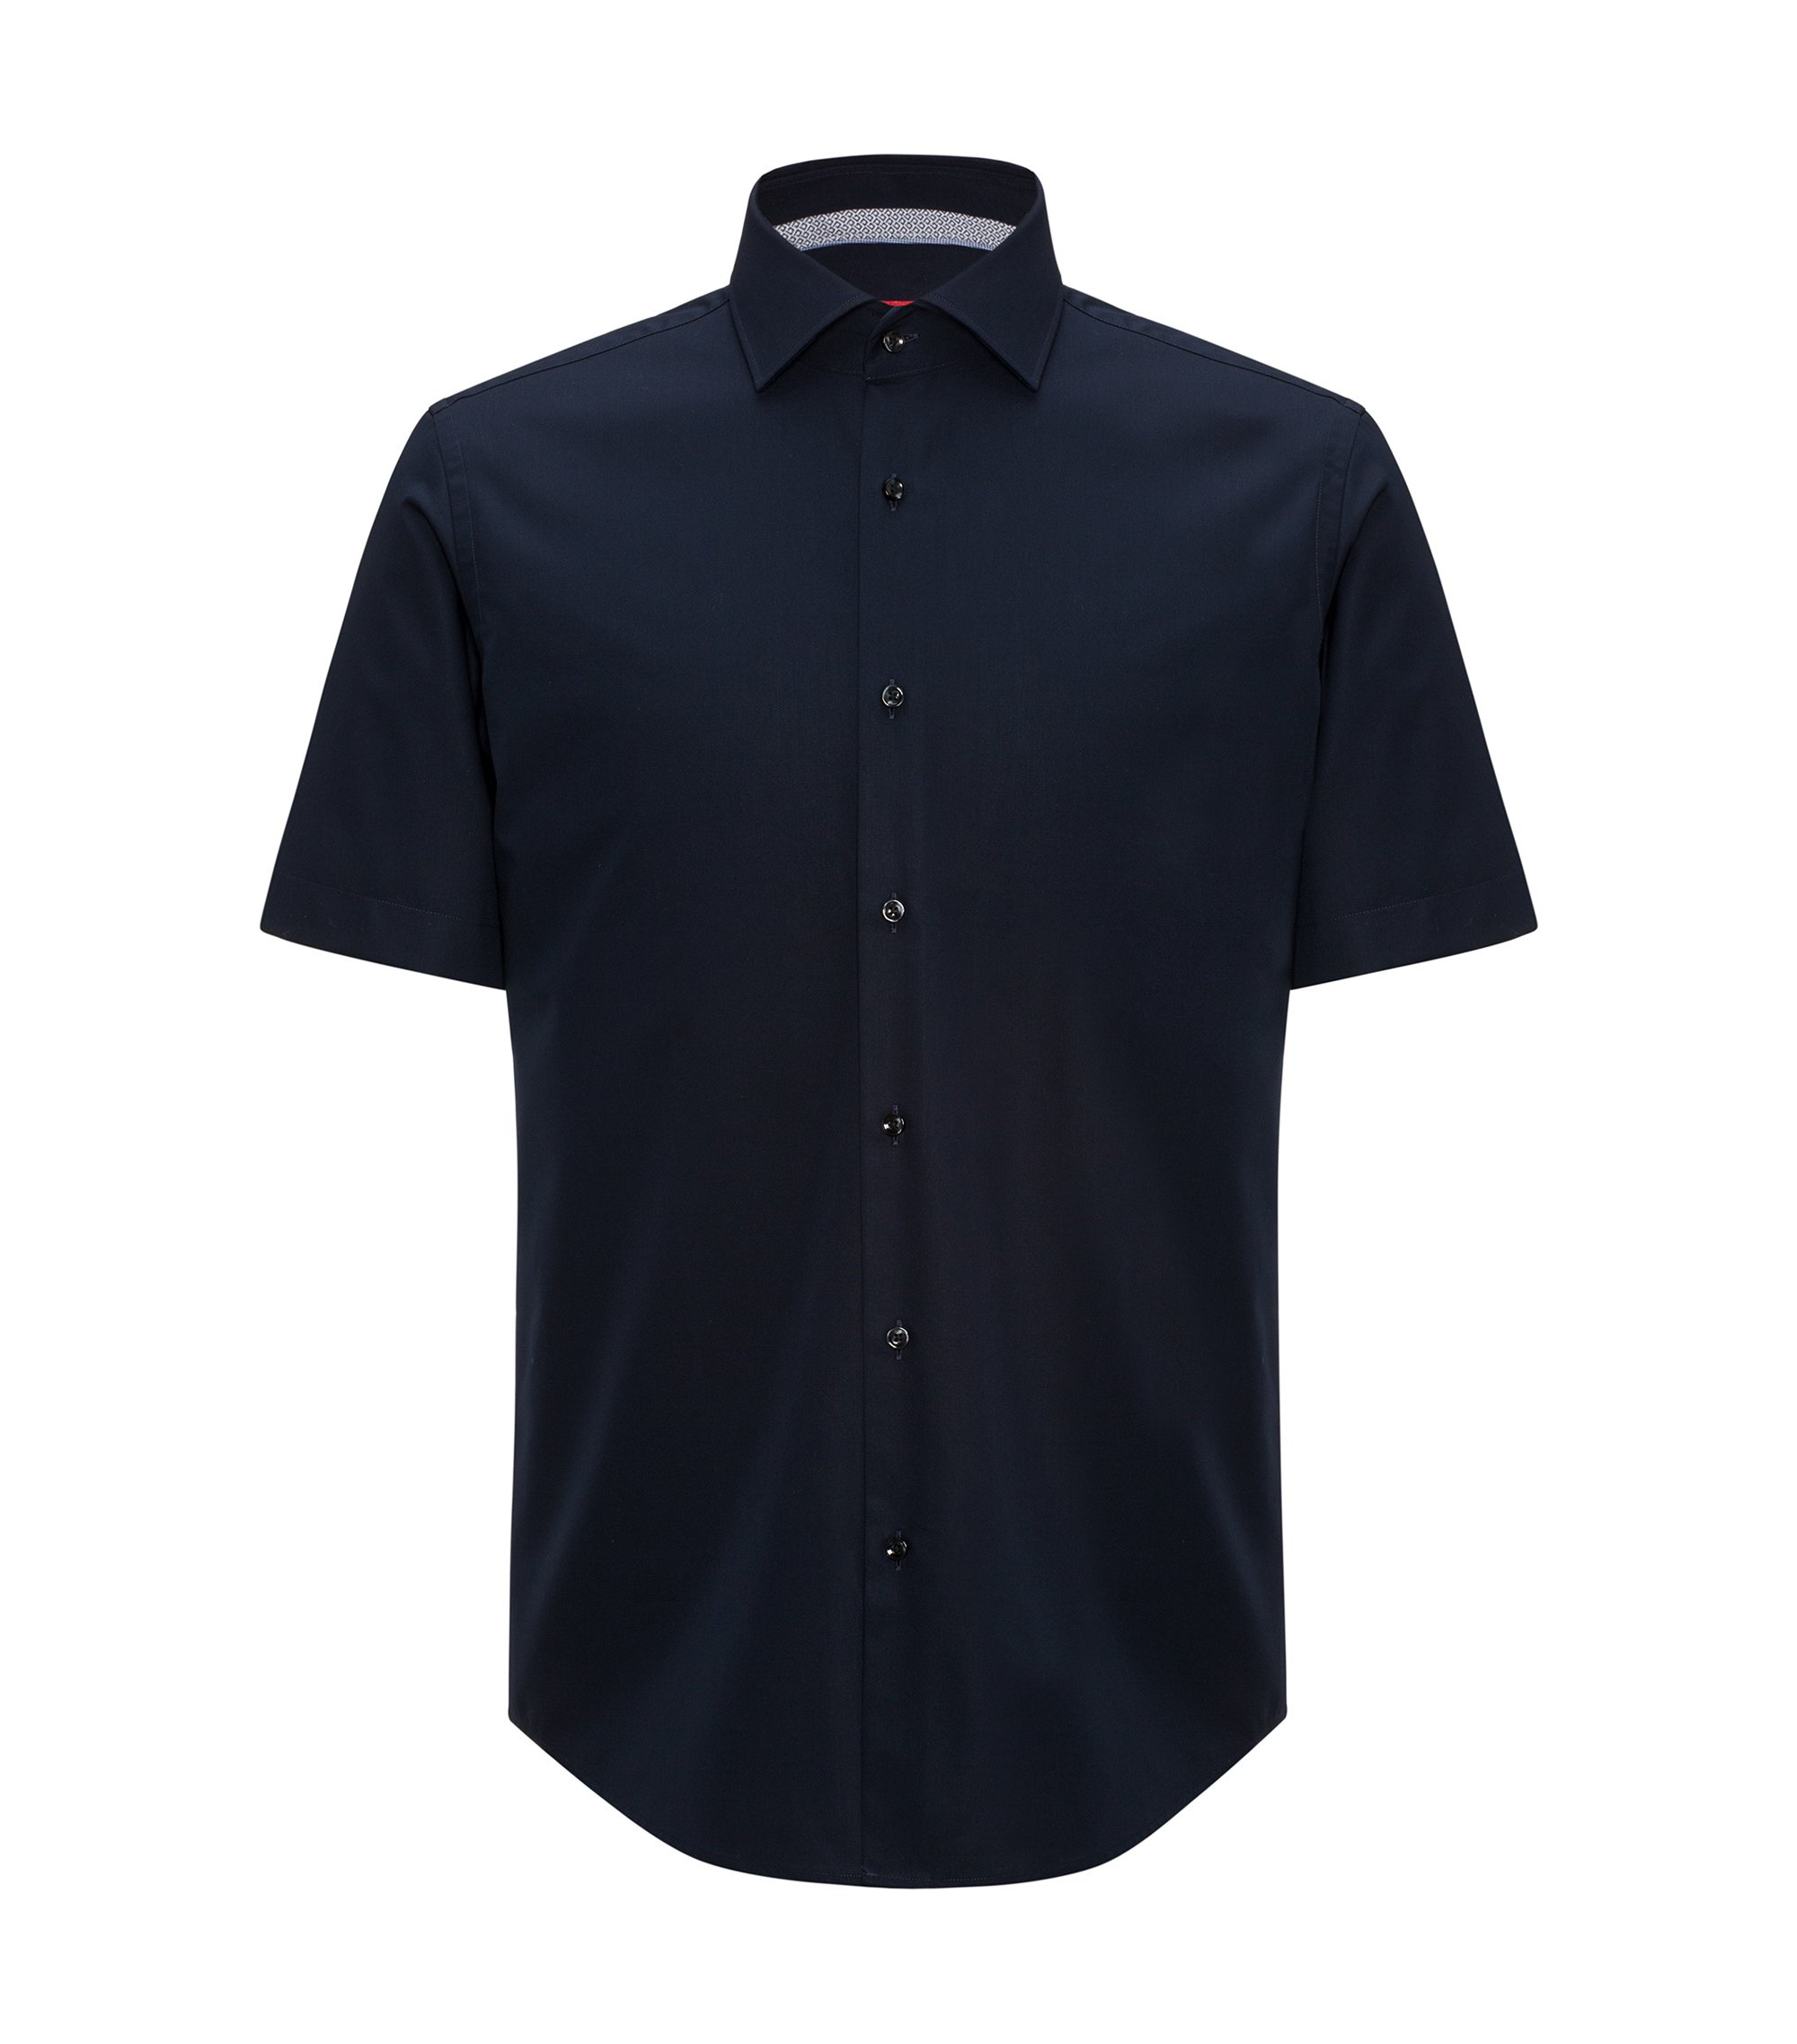 Camicia a maniche corte regular fit in popeline di cotone, Blu scuro